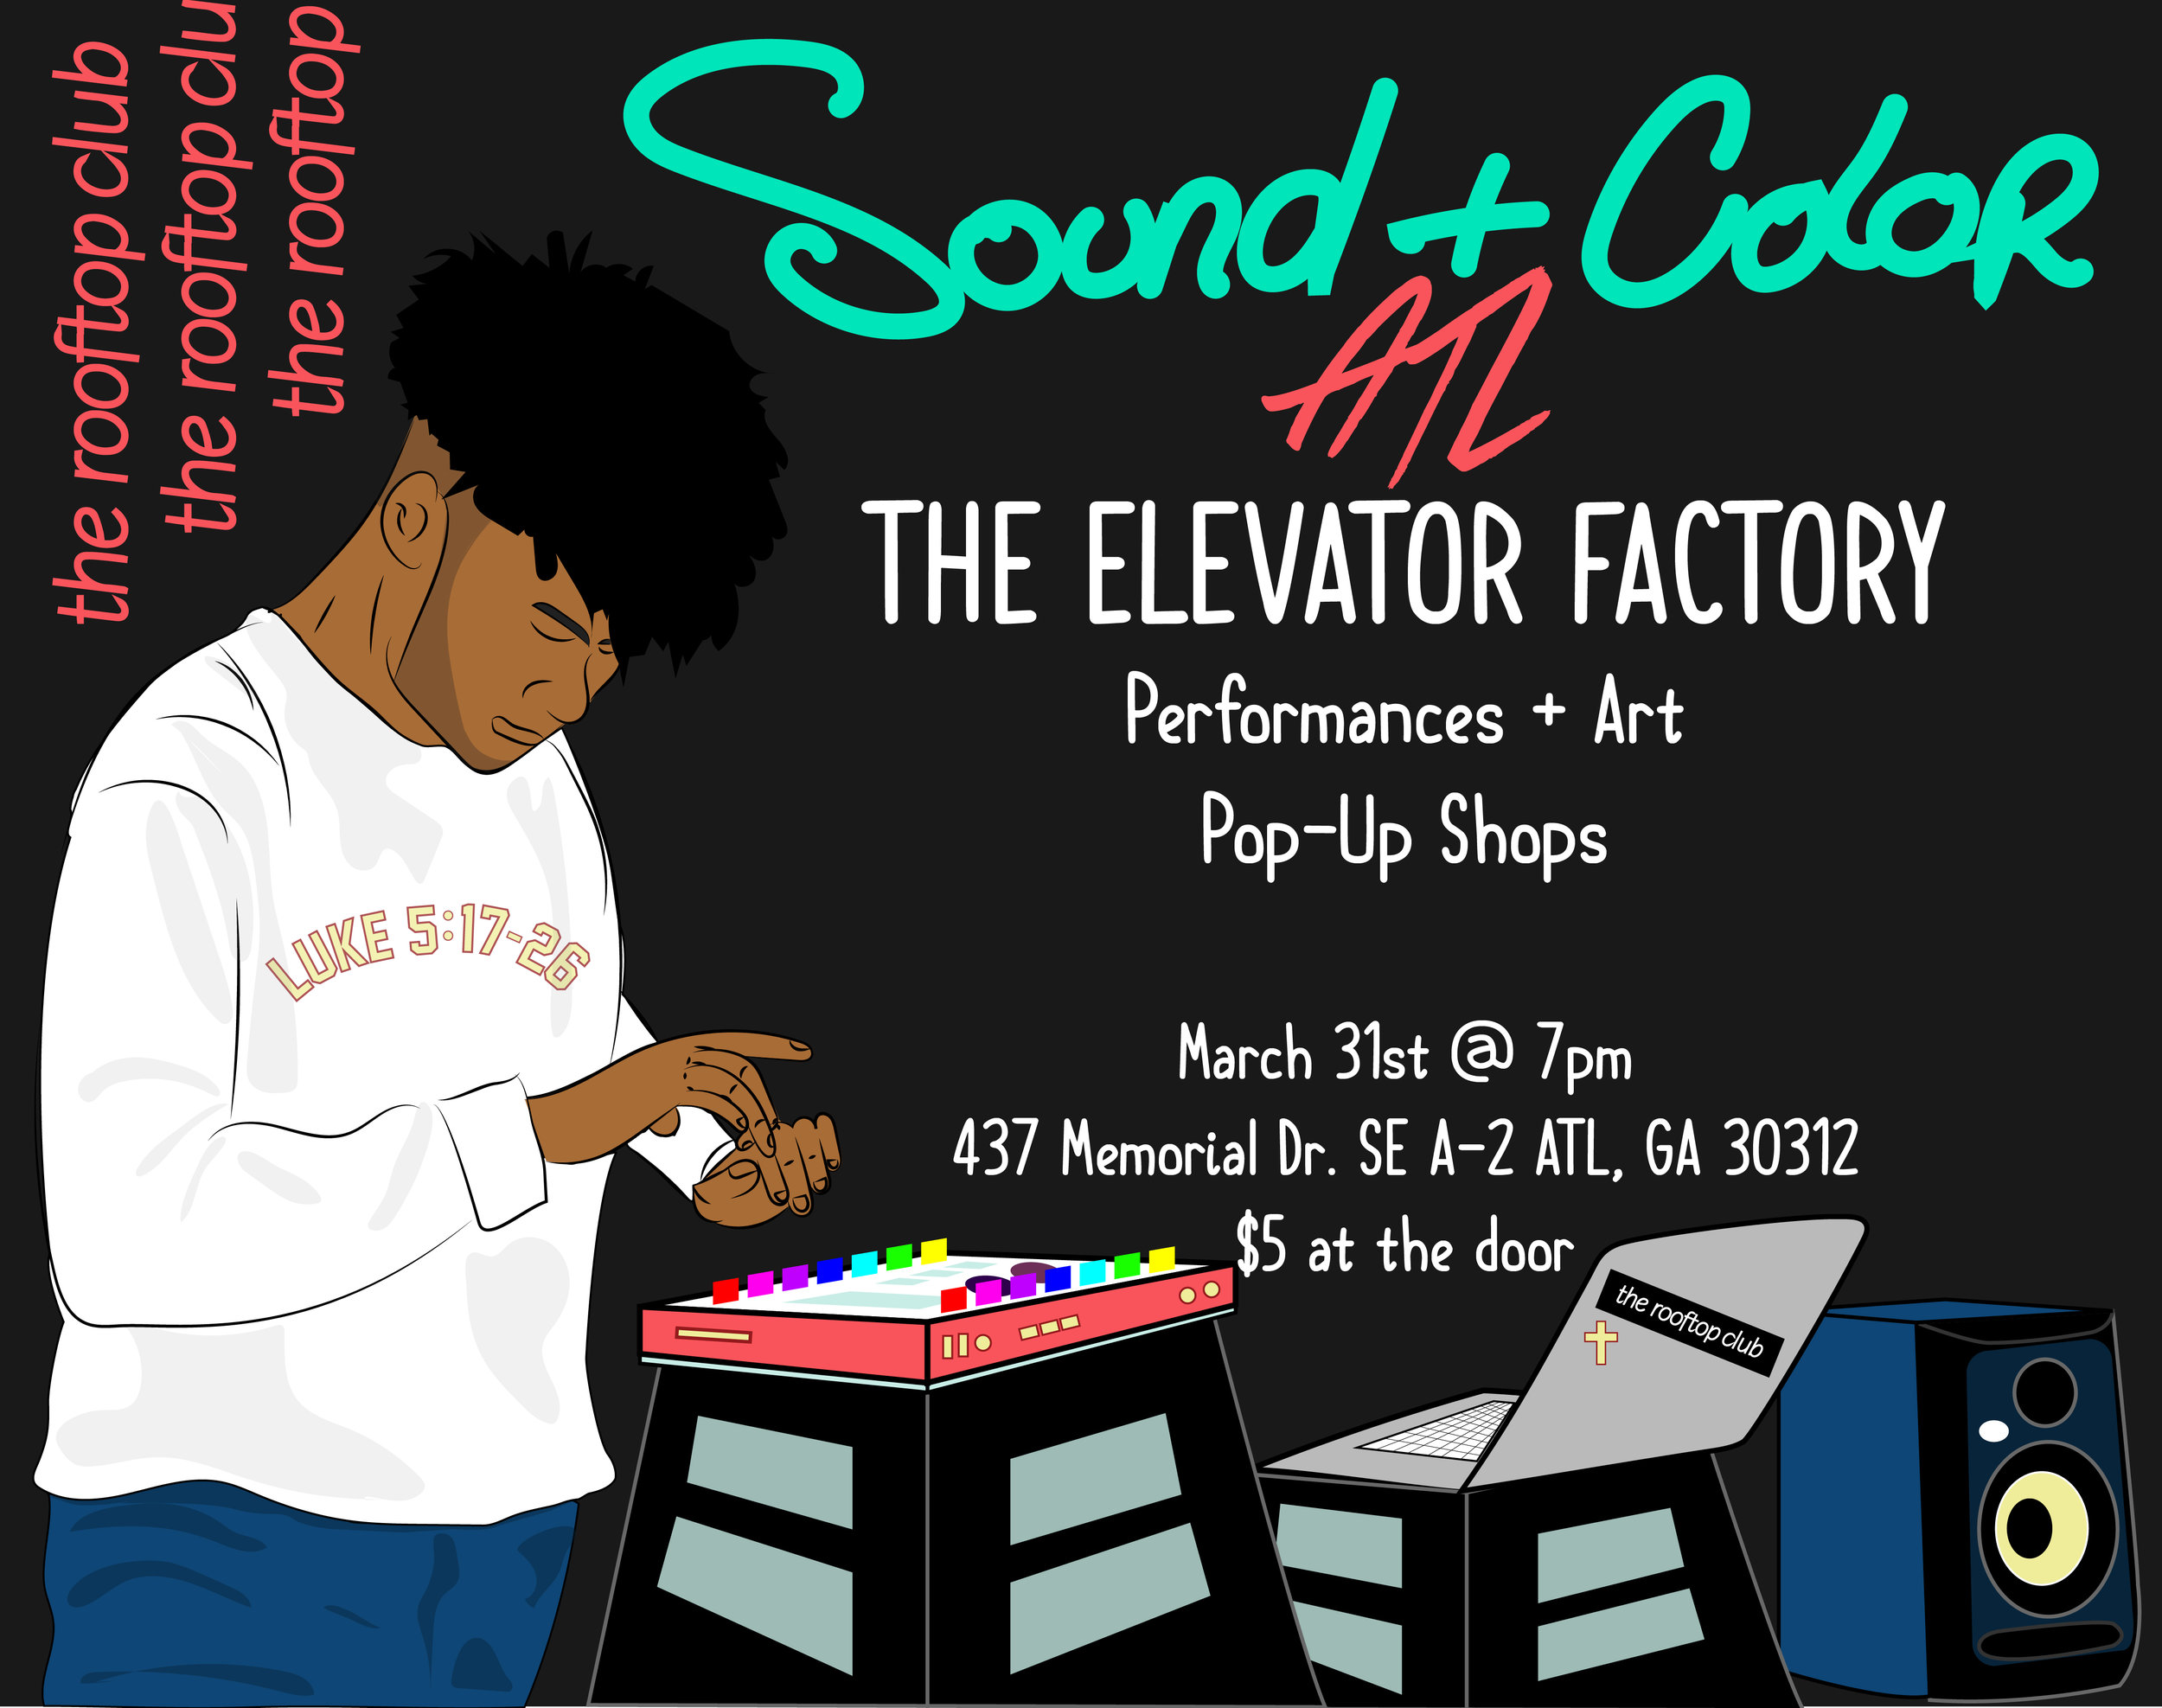 sound and color atl final flyer-01-01-01.jpg